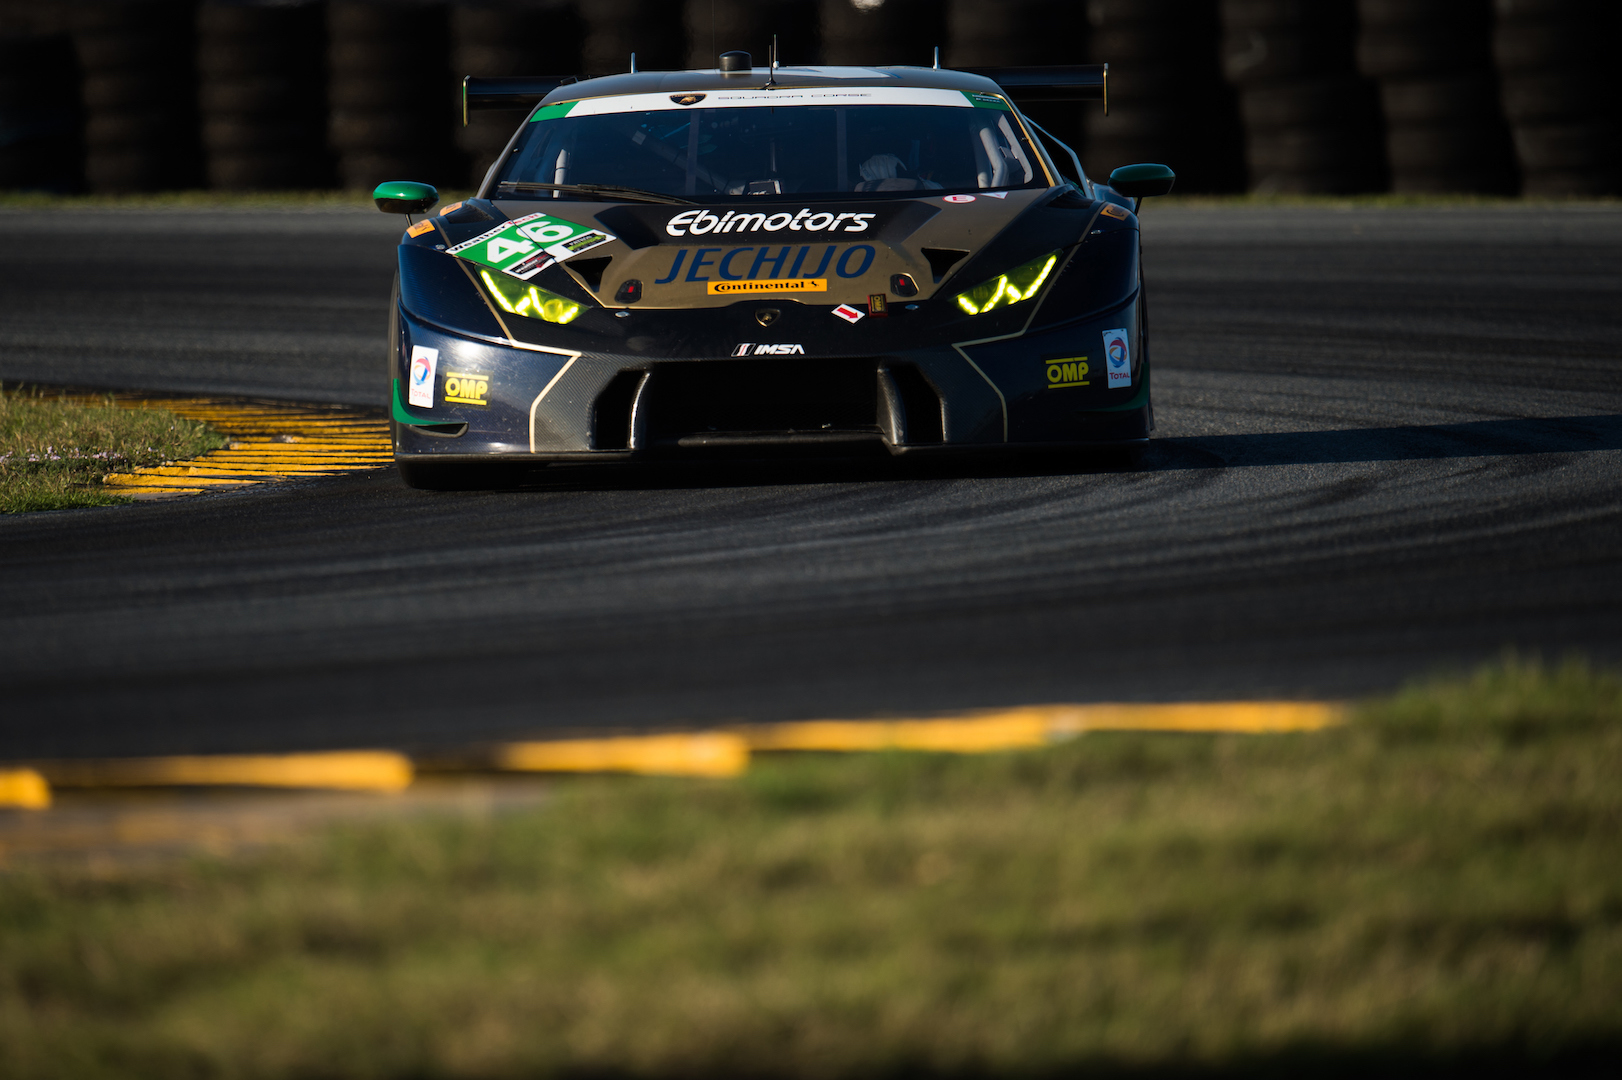 January 5-8, 2017: ROAR Before 24 Test. Paul Miller Racing, Lamborghini Huracan GT3, Bryan Sellers, Madison Snow, Bryce Miller, Andrea Caldarelli